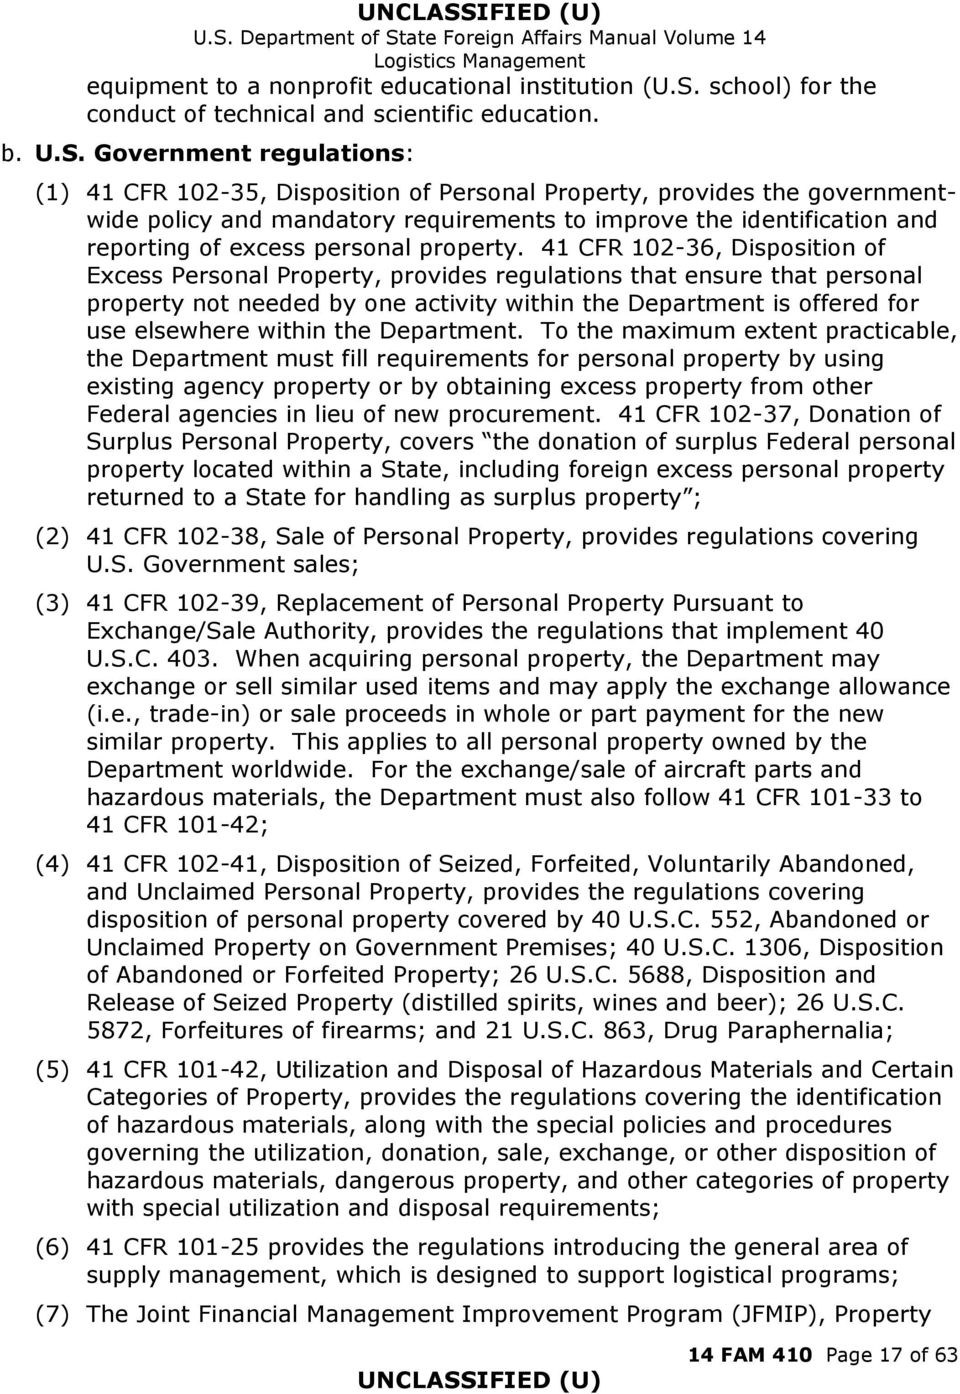 Government regulations: (1) 41 CFR 102-35, Disposition of Personal Property, provides the governmentwide policy and mandatory requirements to improve the identification and reporting of excess